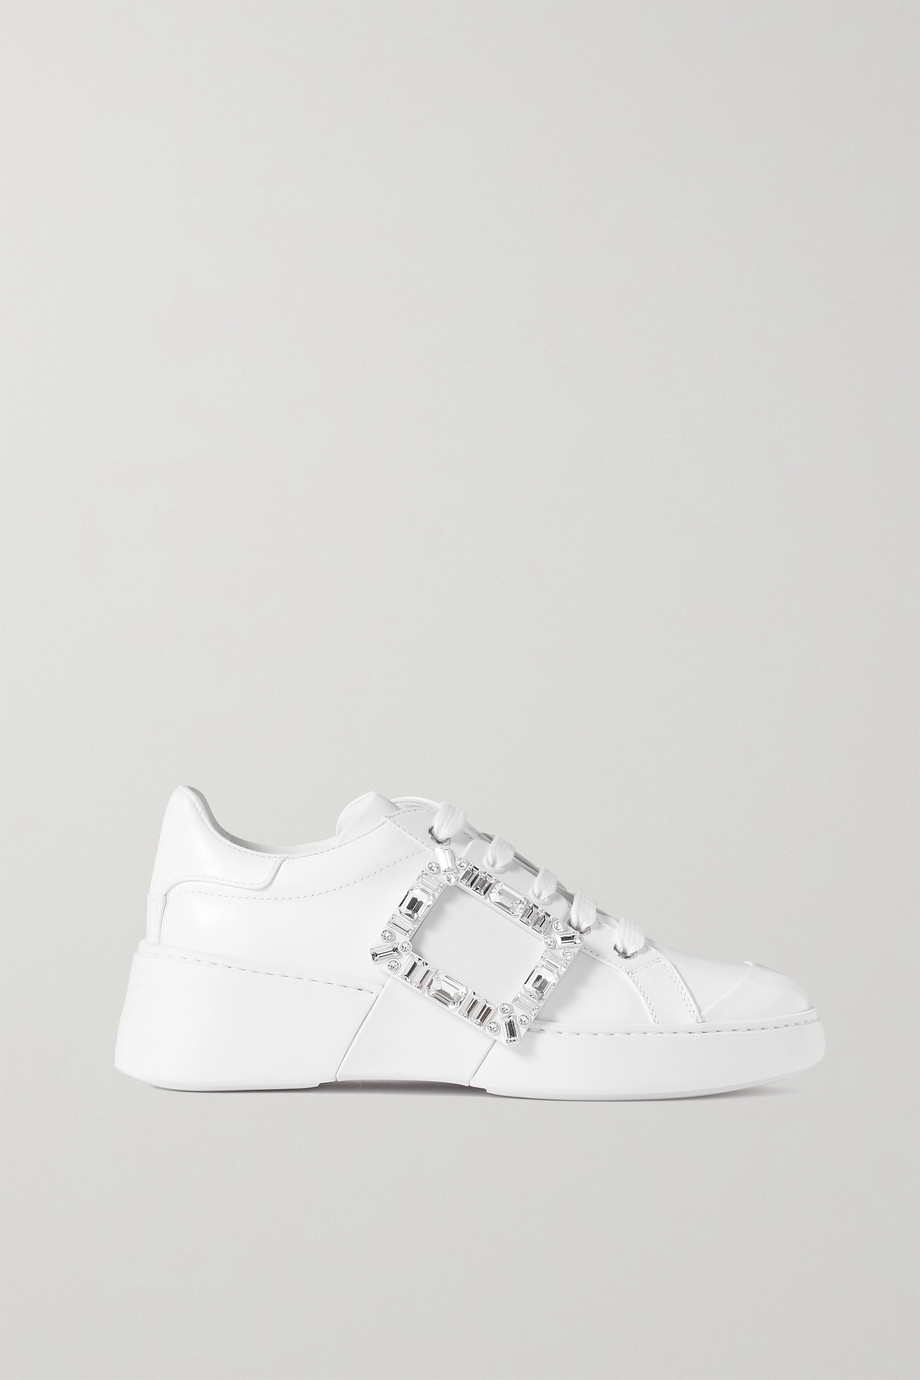 Roger Vivier sneakers with crystals